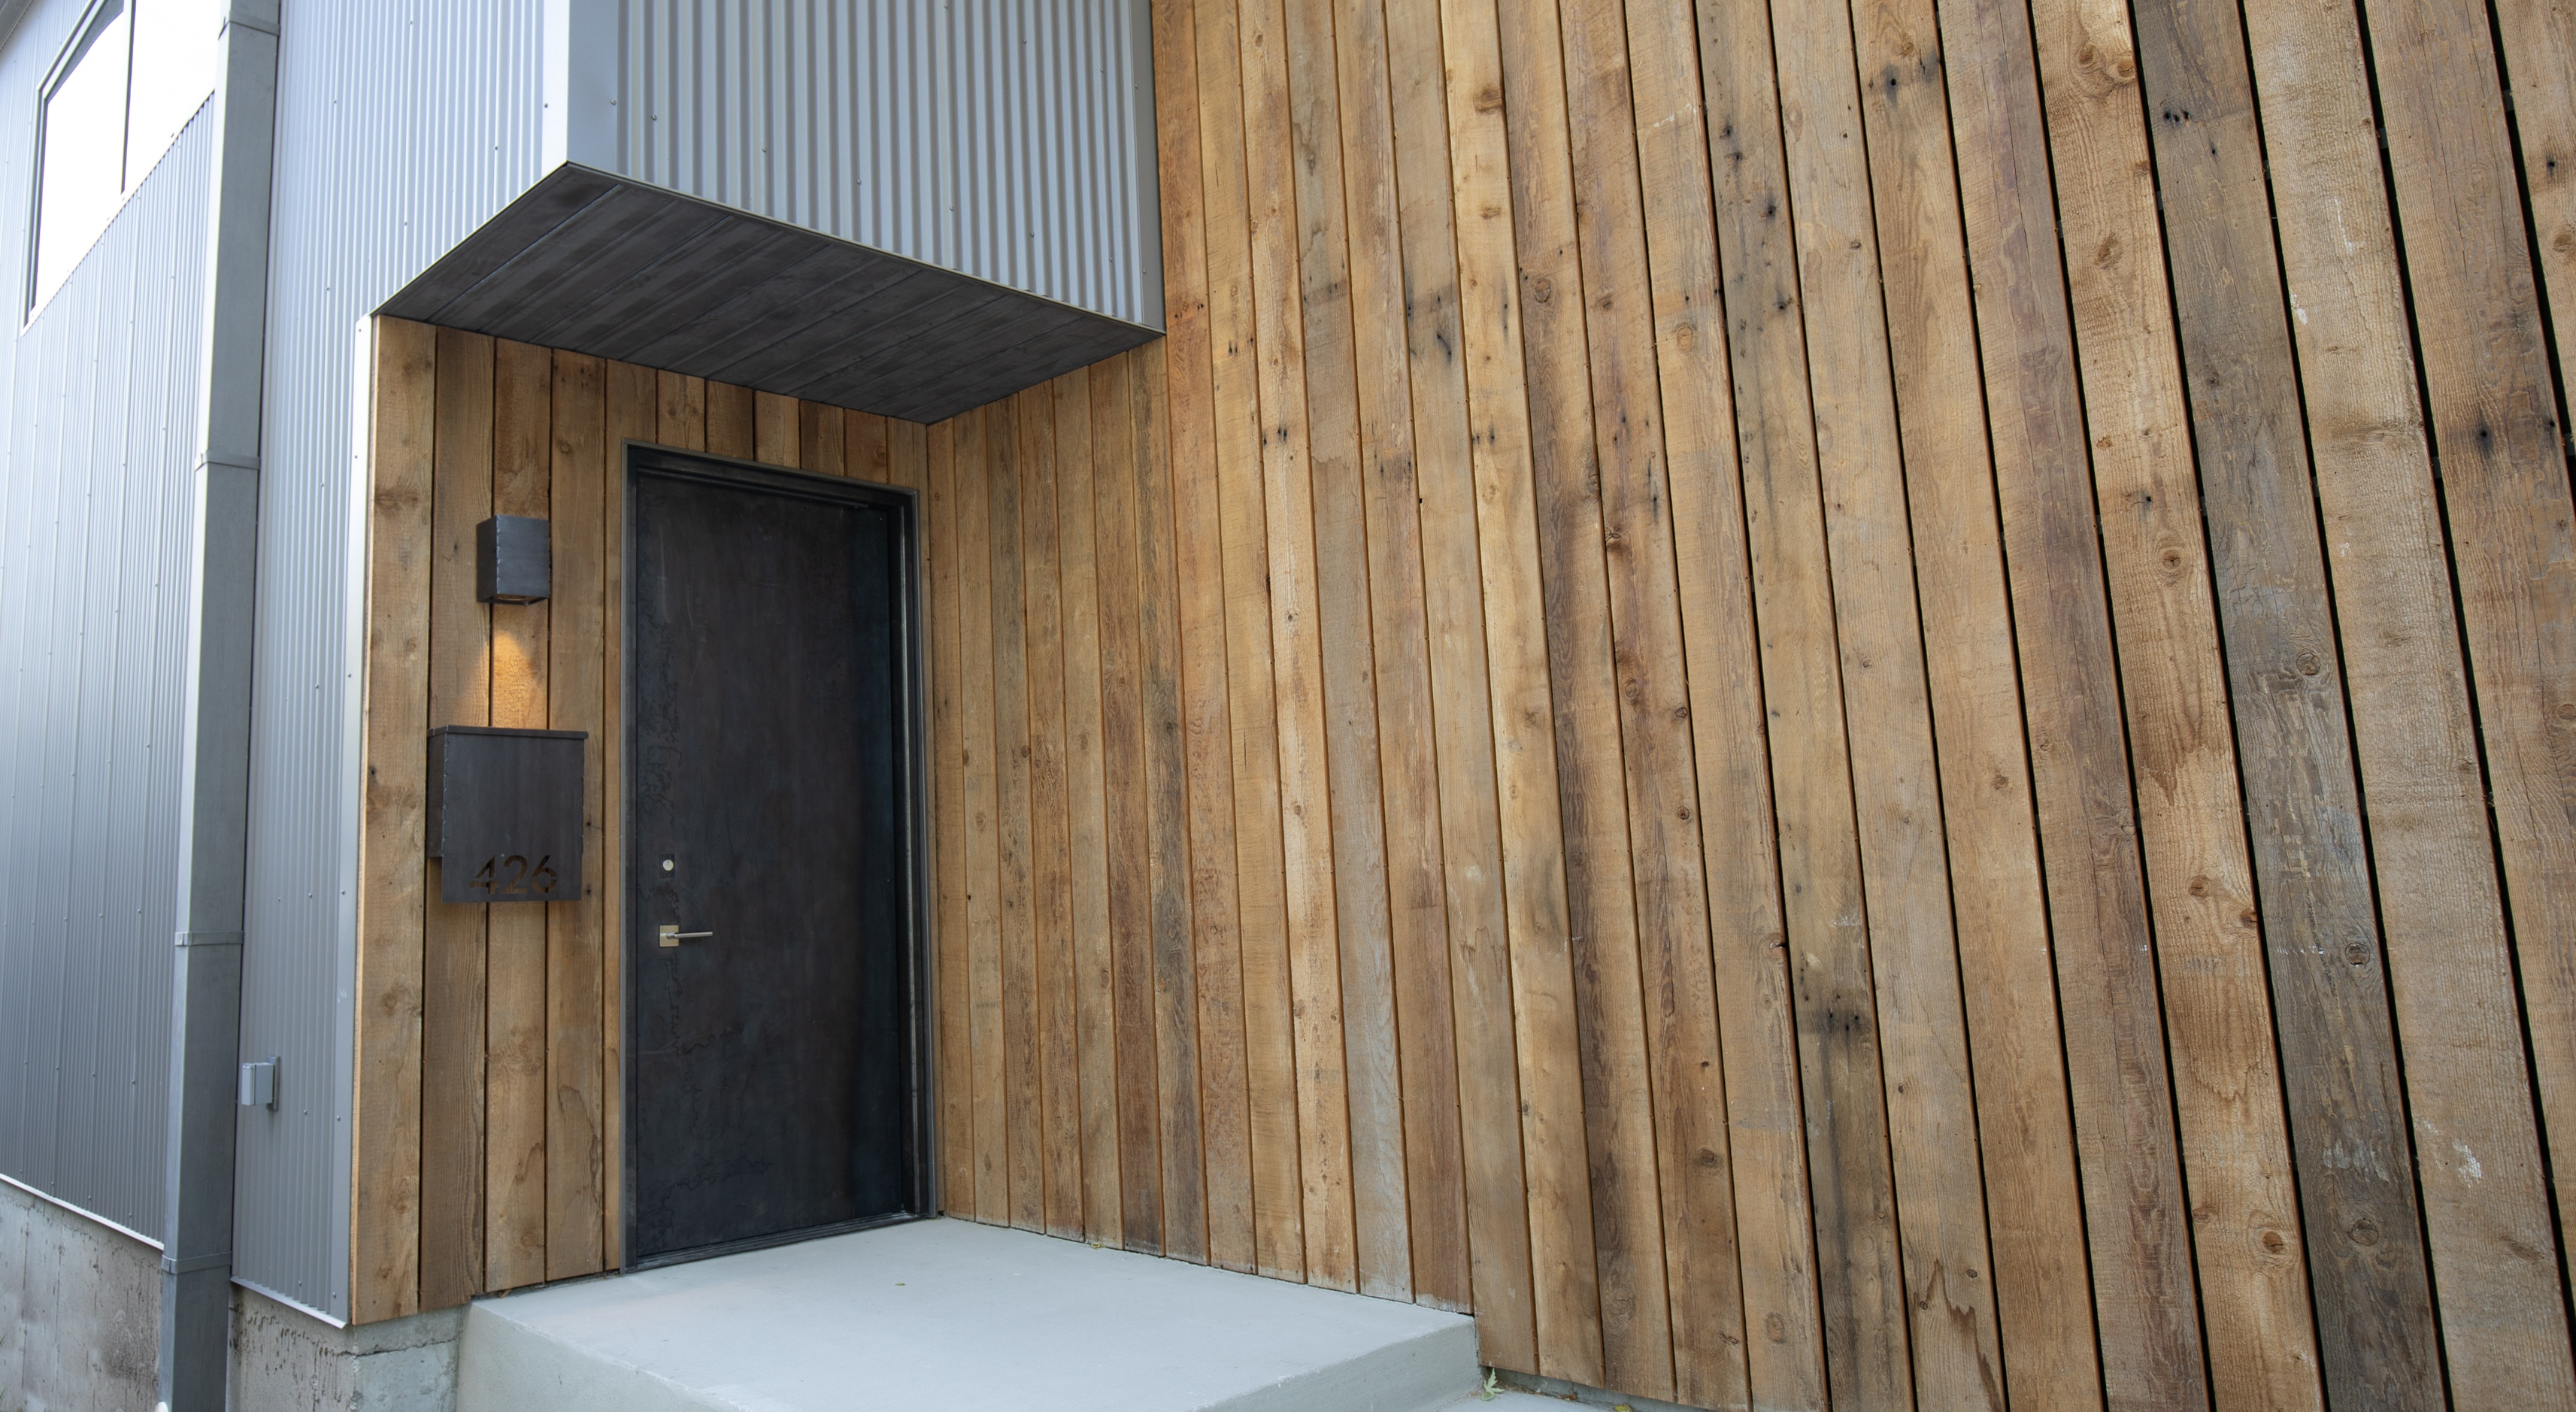 corrugated bonderized steel siding